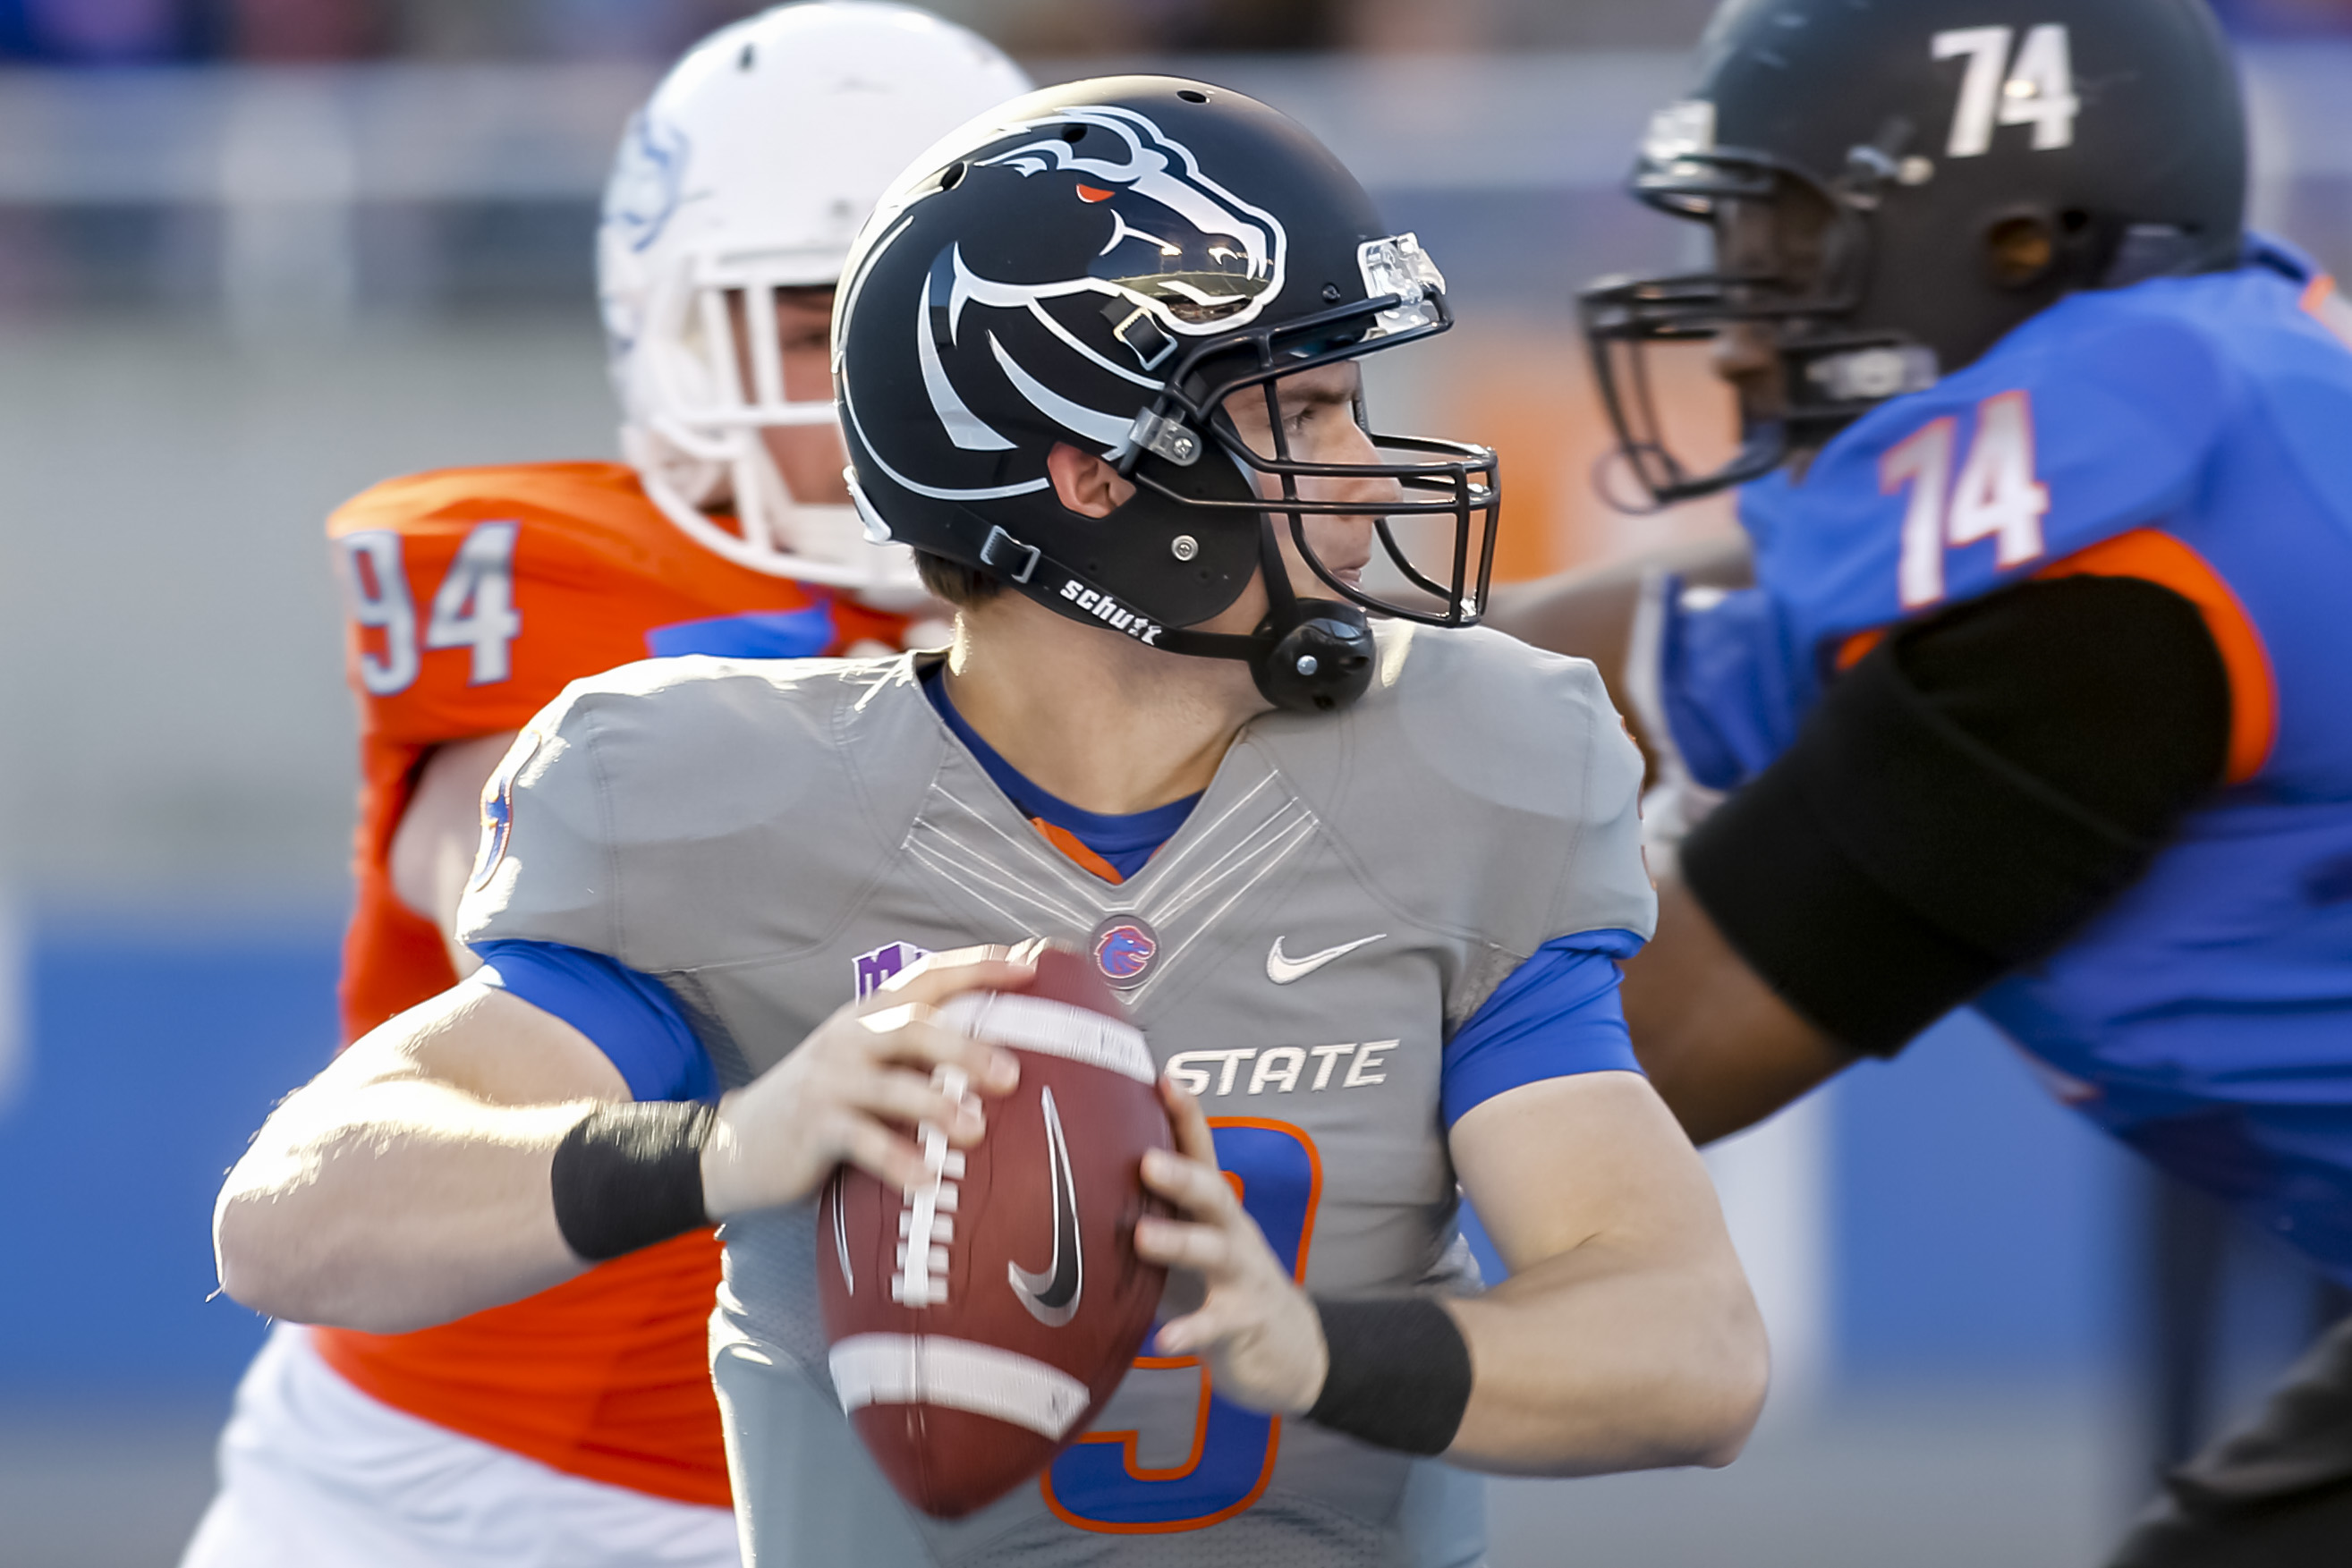 Boise State quarterback Grant Hedrick looks for a receiver during the first half of an NCAA college spring football scrimmage in Boise, Idaho, Saturday, April 12, 2014